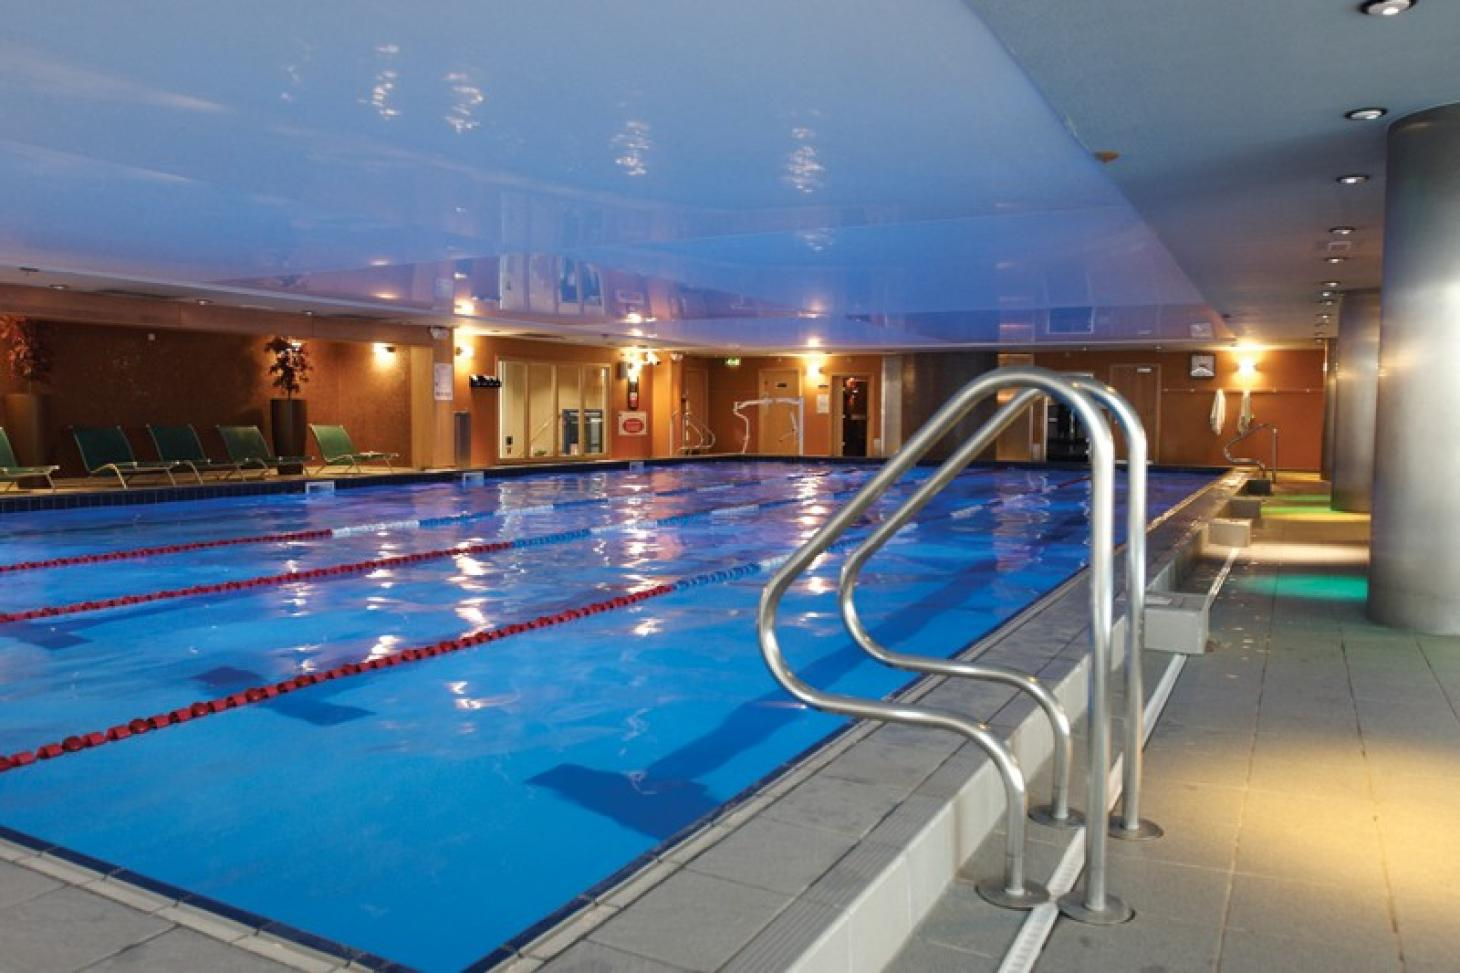 David Lloyd Fulham Indoor swimming pool